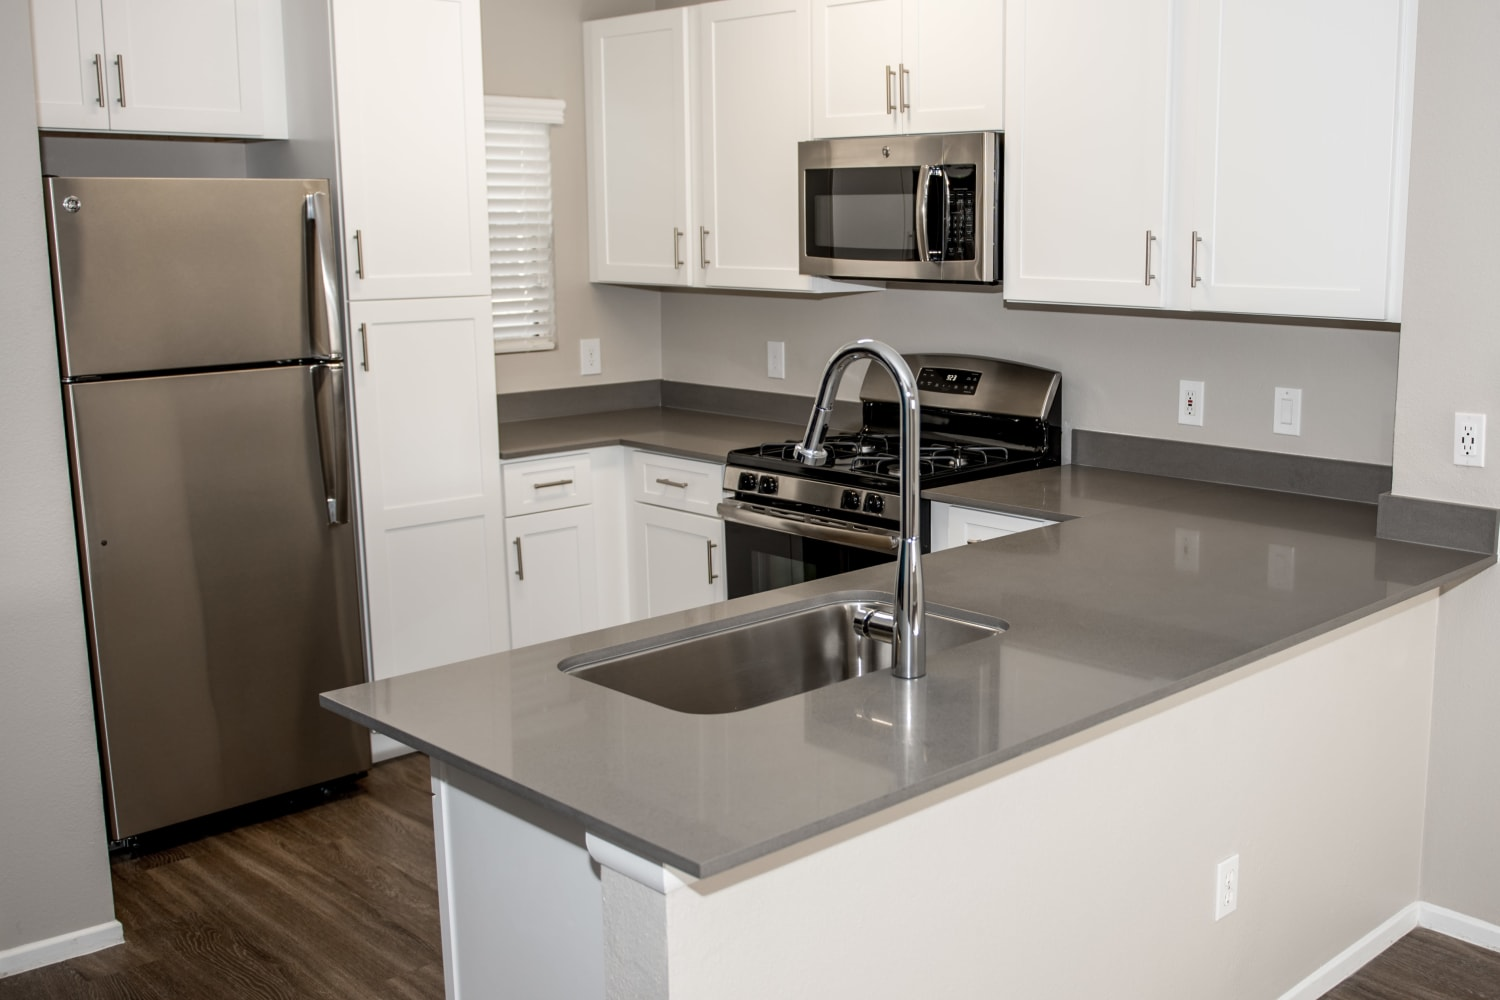 Madrid Apartments in Mission Viejo, California, offer modern kitchens with white cabinets